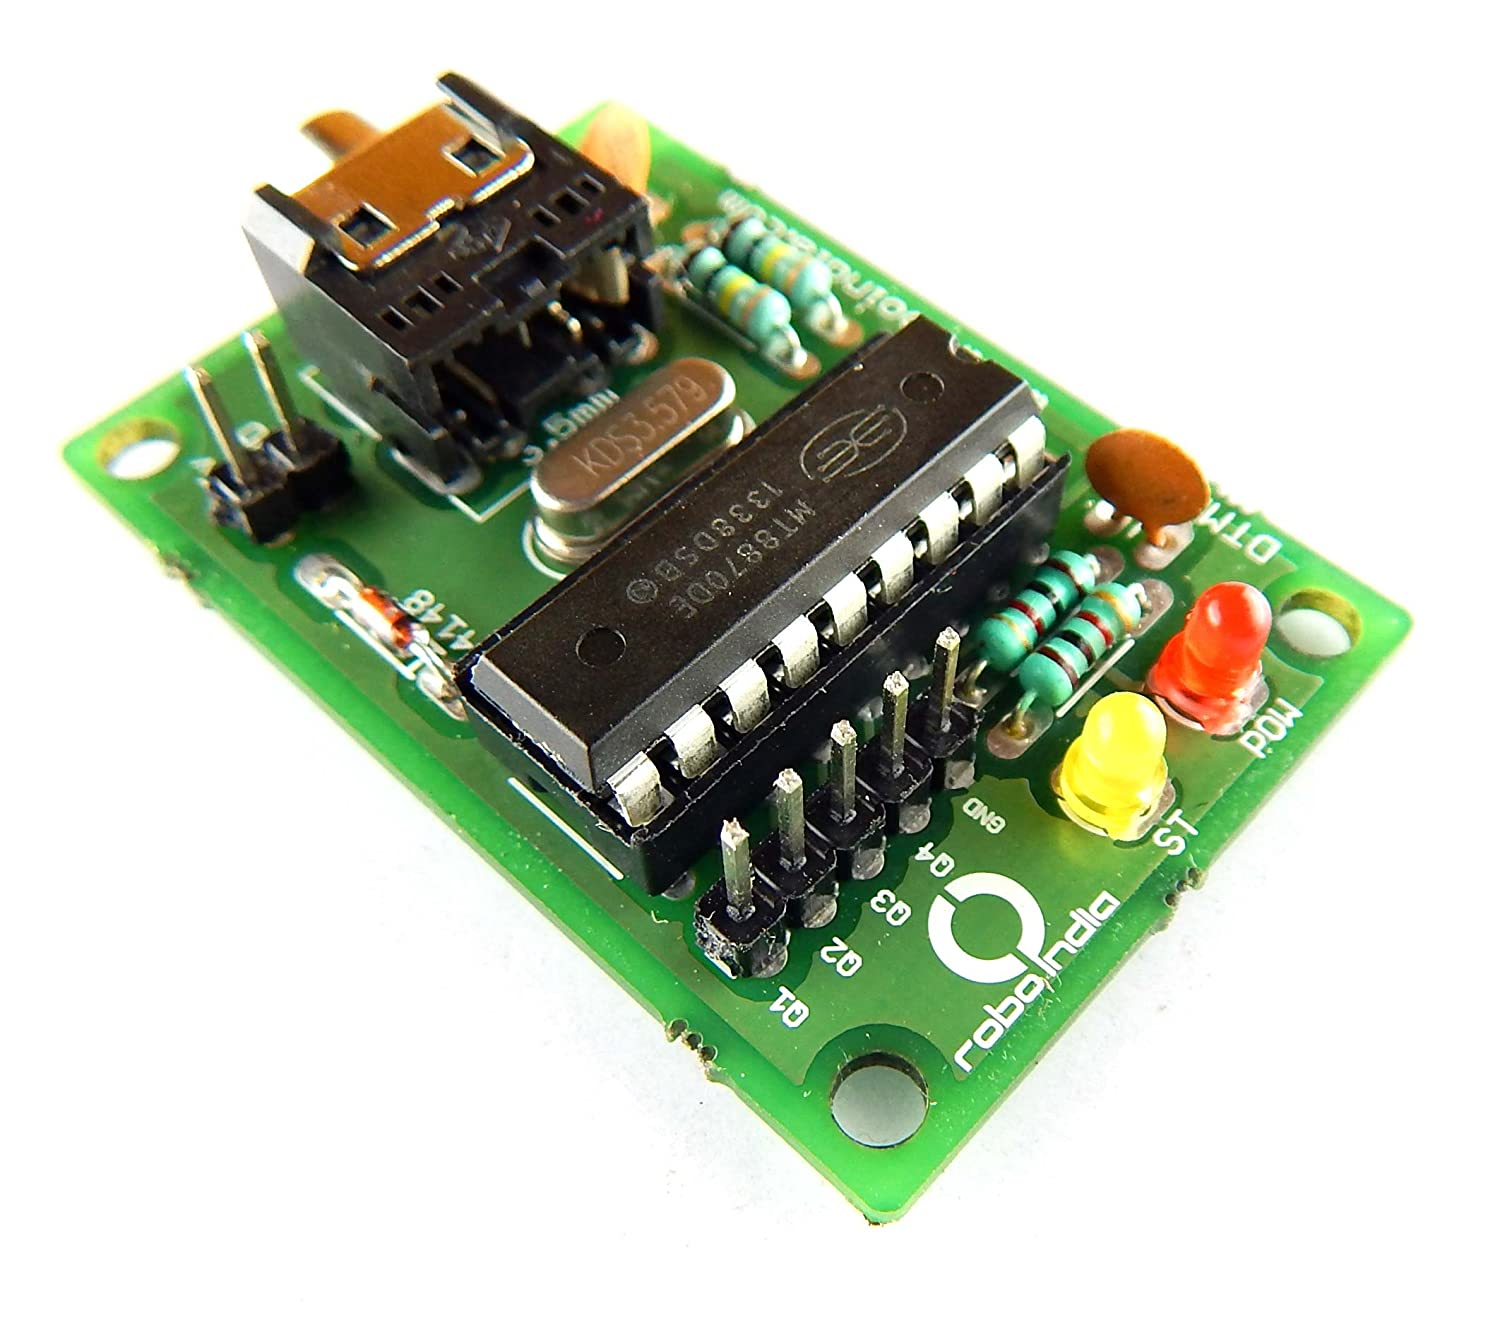 Robo India Ri 02 Dtmf Module Mt8870 Decoder With Auxiliary Cable Using Mt8870de Industrial Scientific